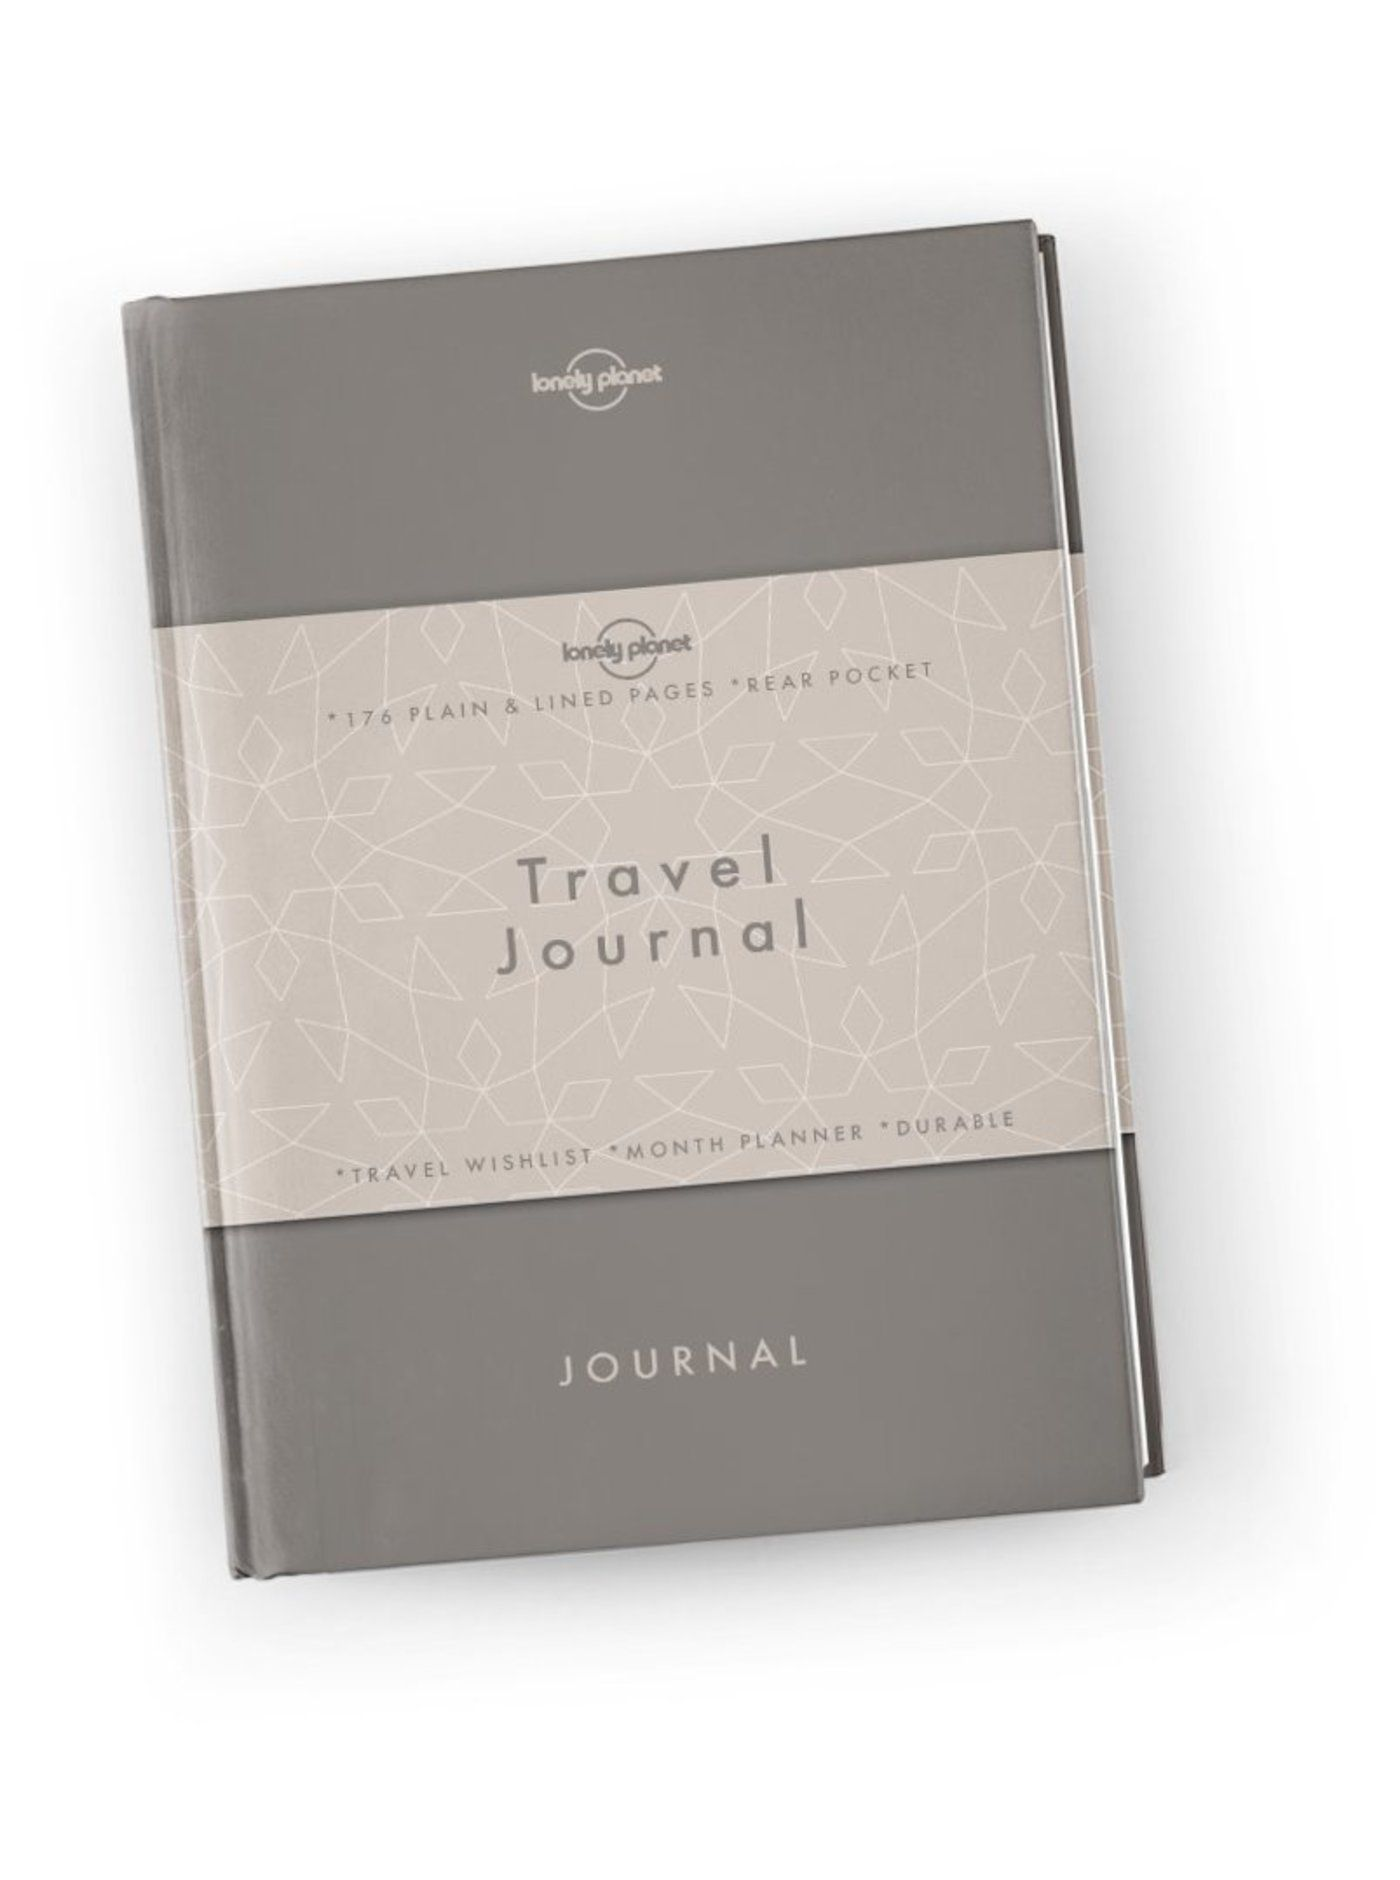 Lonely Planet's Travel Journal